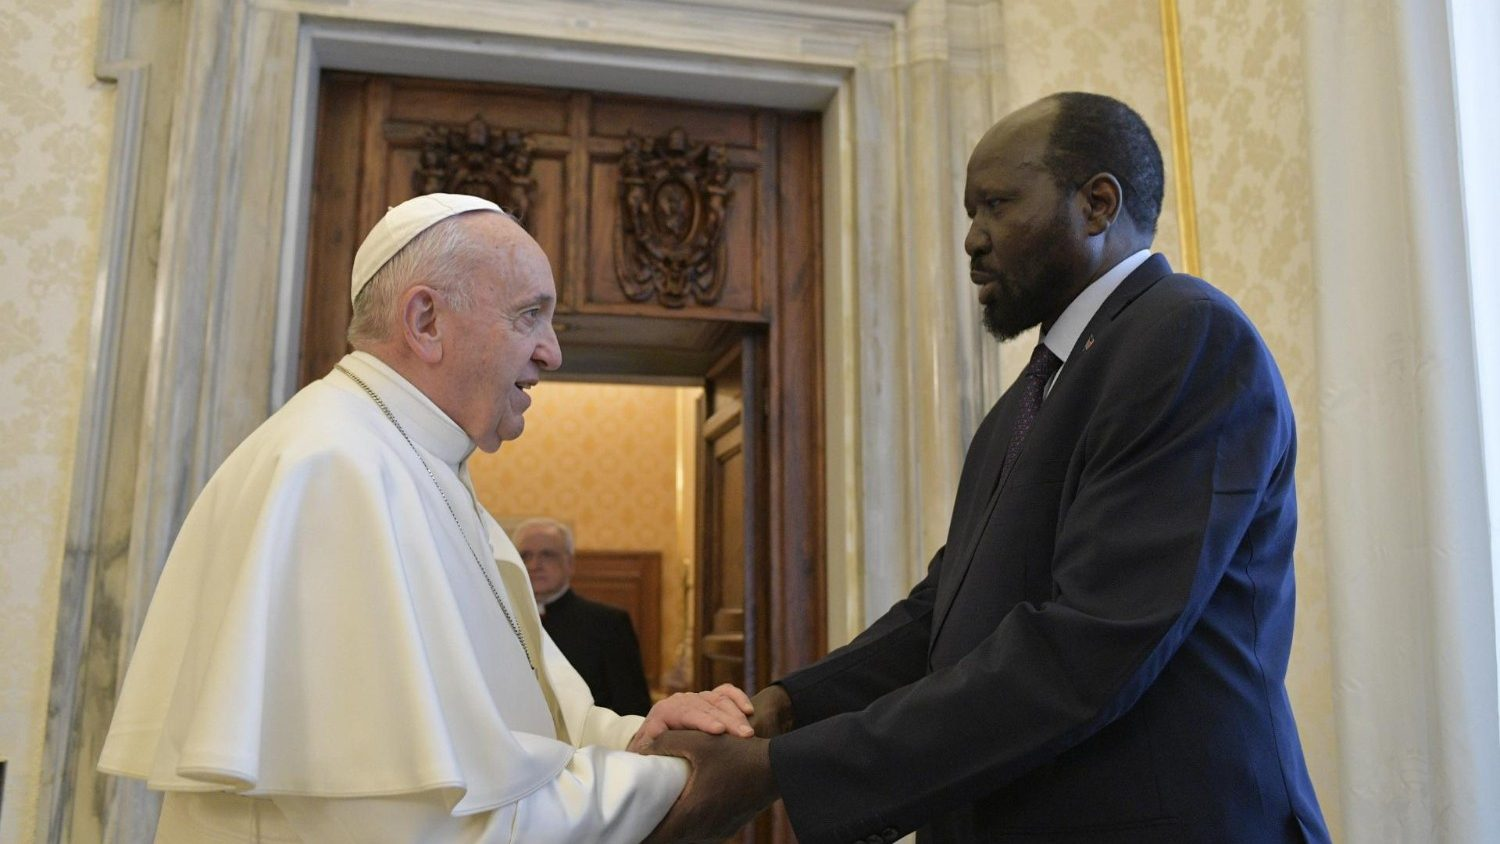 Pope Francis meets South Sudan's President Salva Kiir in March 2019. Photo: Vatican Media